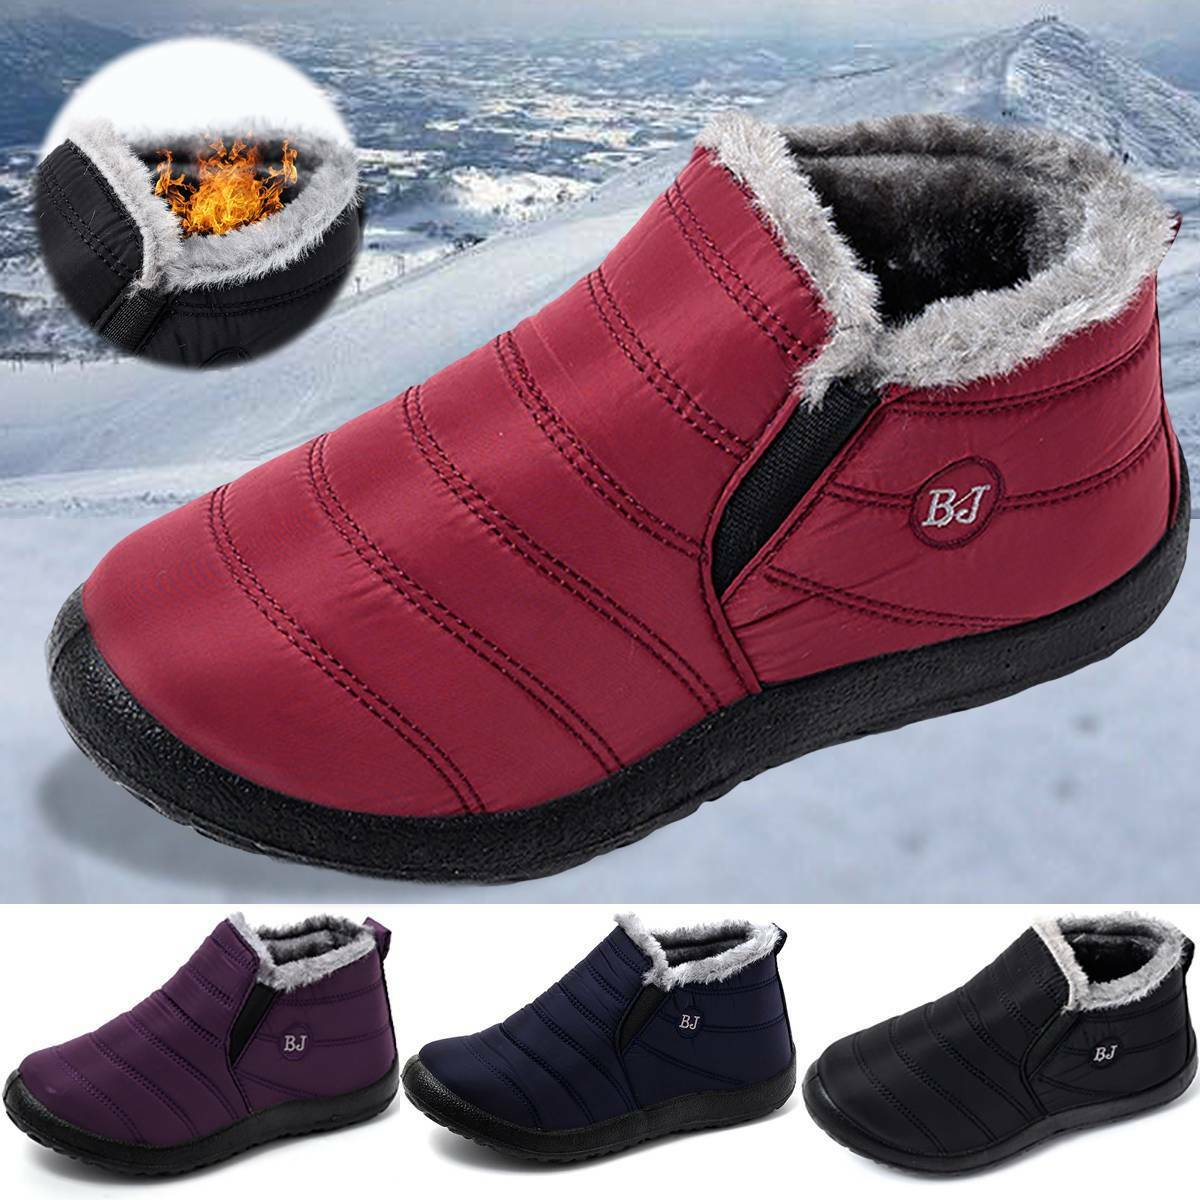 Mens Lined Snow Boots Warm Shoes